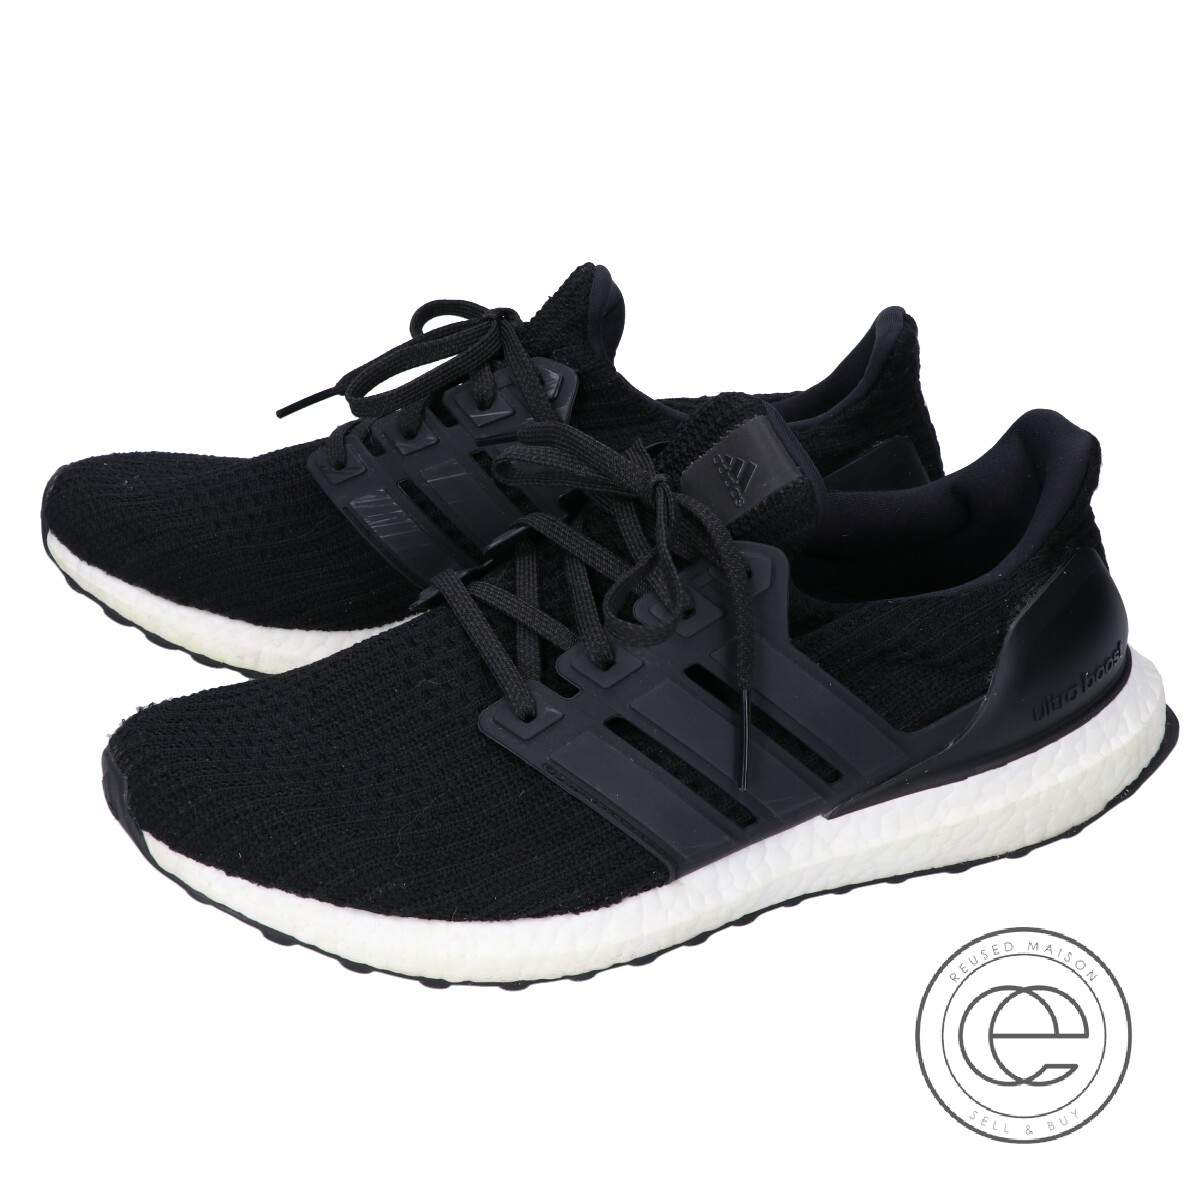 good selling clearance prices new collection BB6166 ULTRABOOST ultra boost running sneakers / shoes 27.5 core black men  made in adidas Adidas 18 years